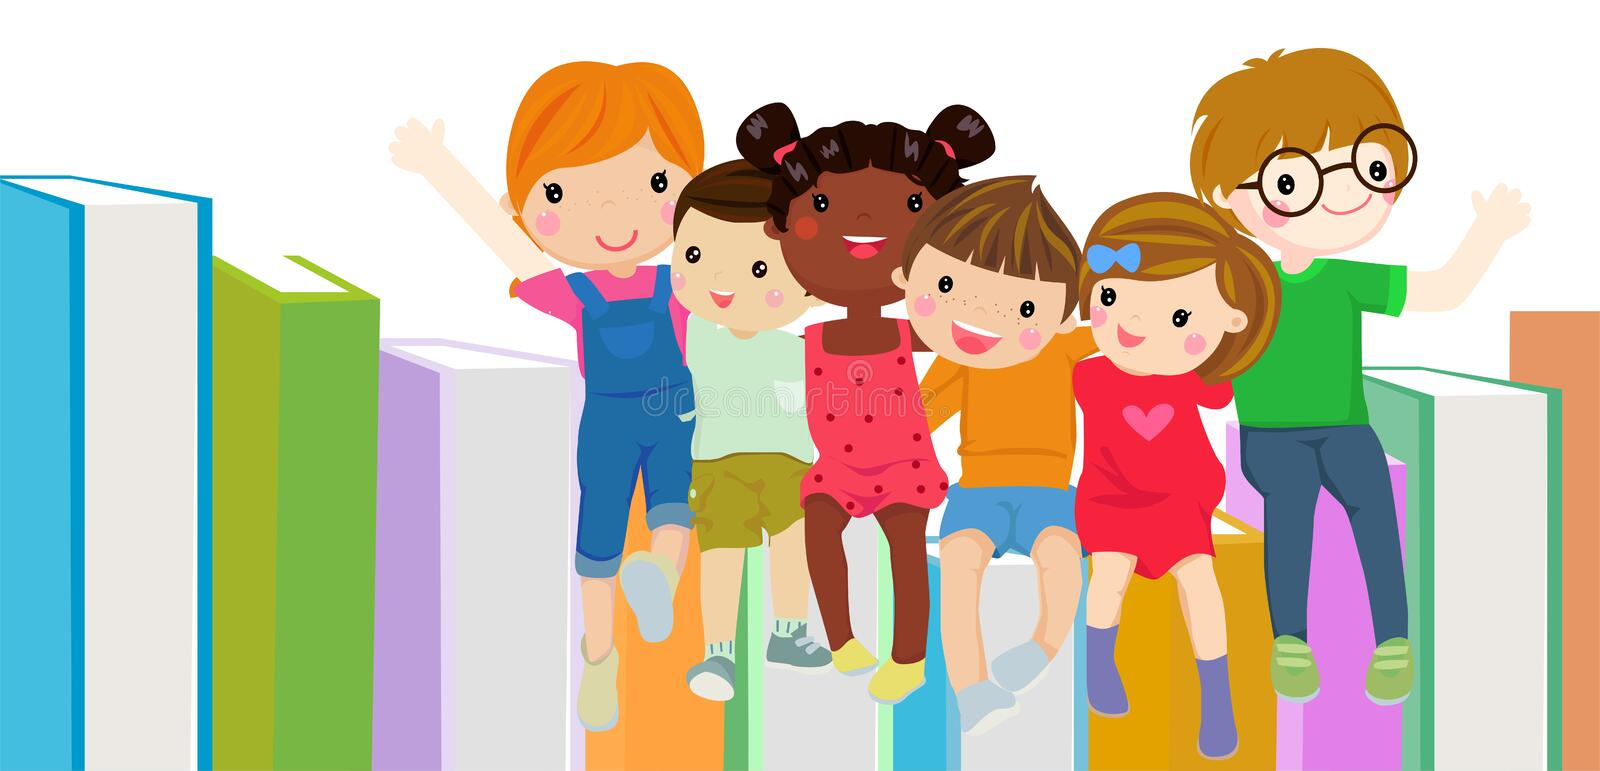 Group of children and books royalty free stock photos